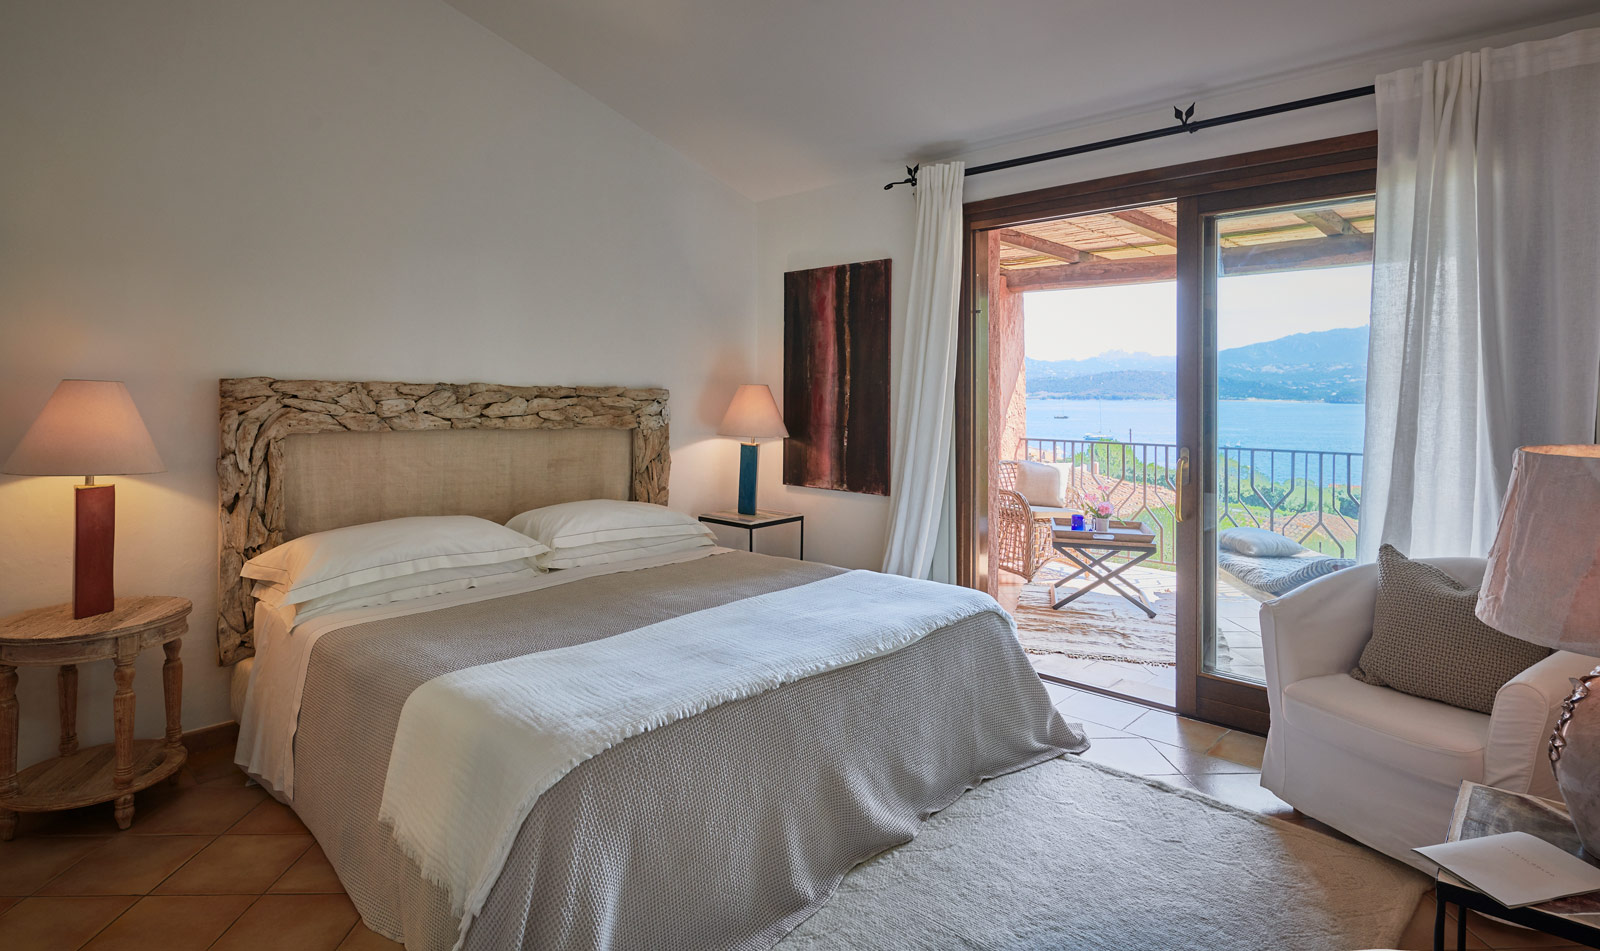 Charming Sea View Room at Villa Del Golfo Lifestyle